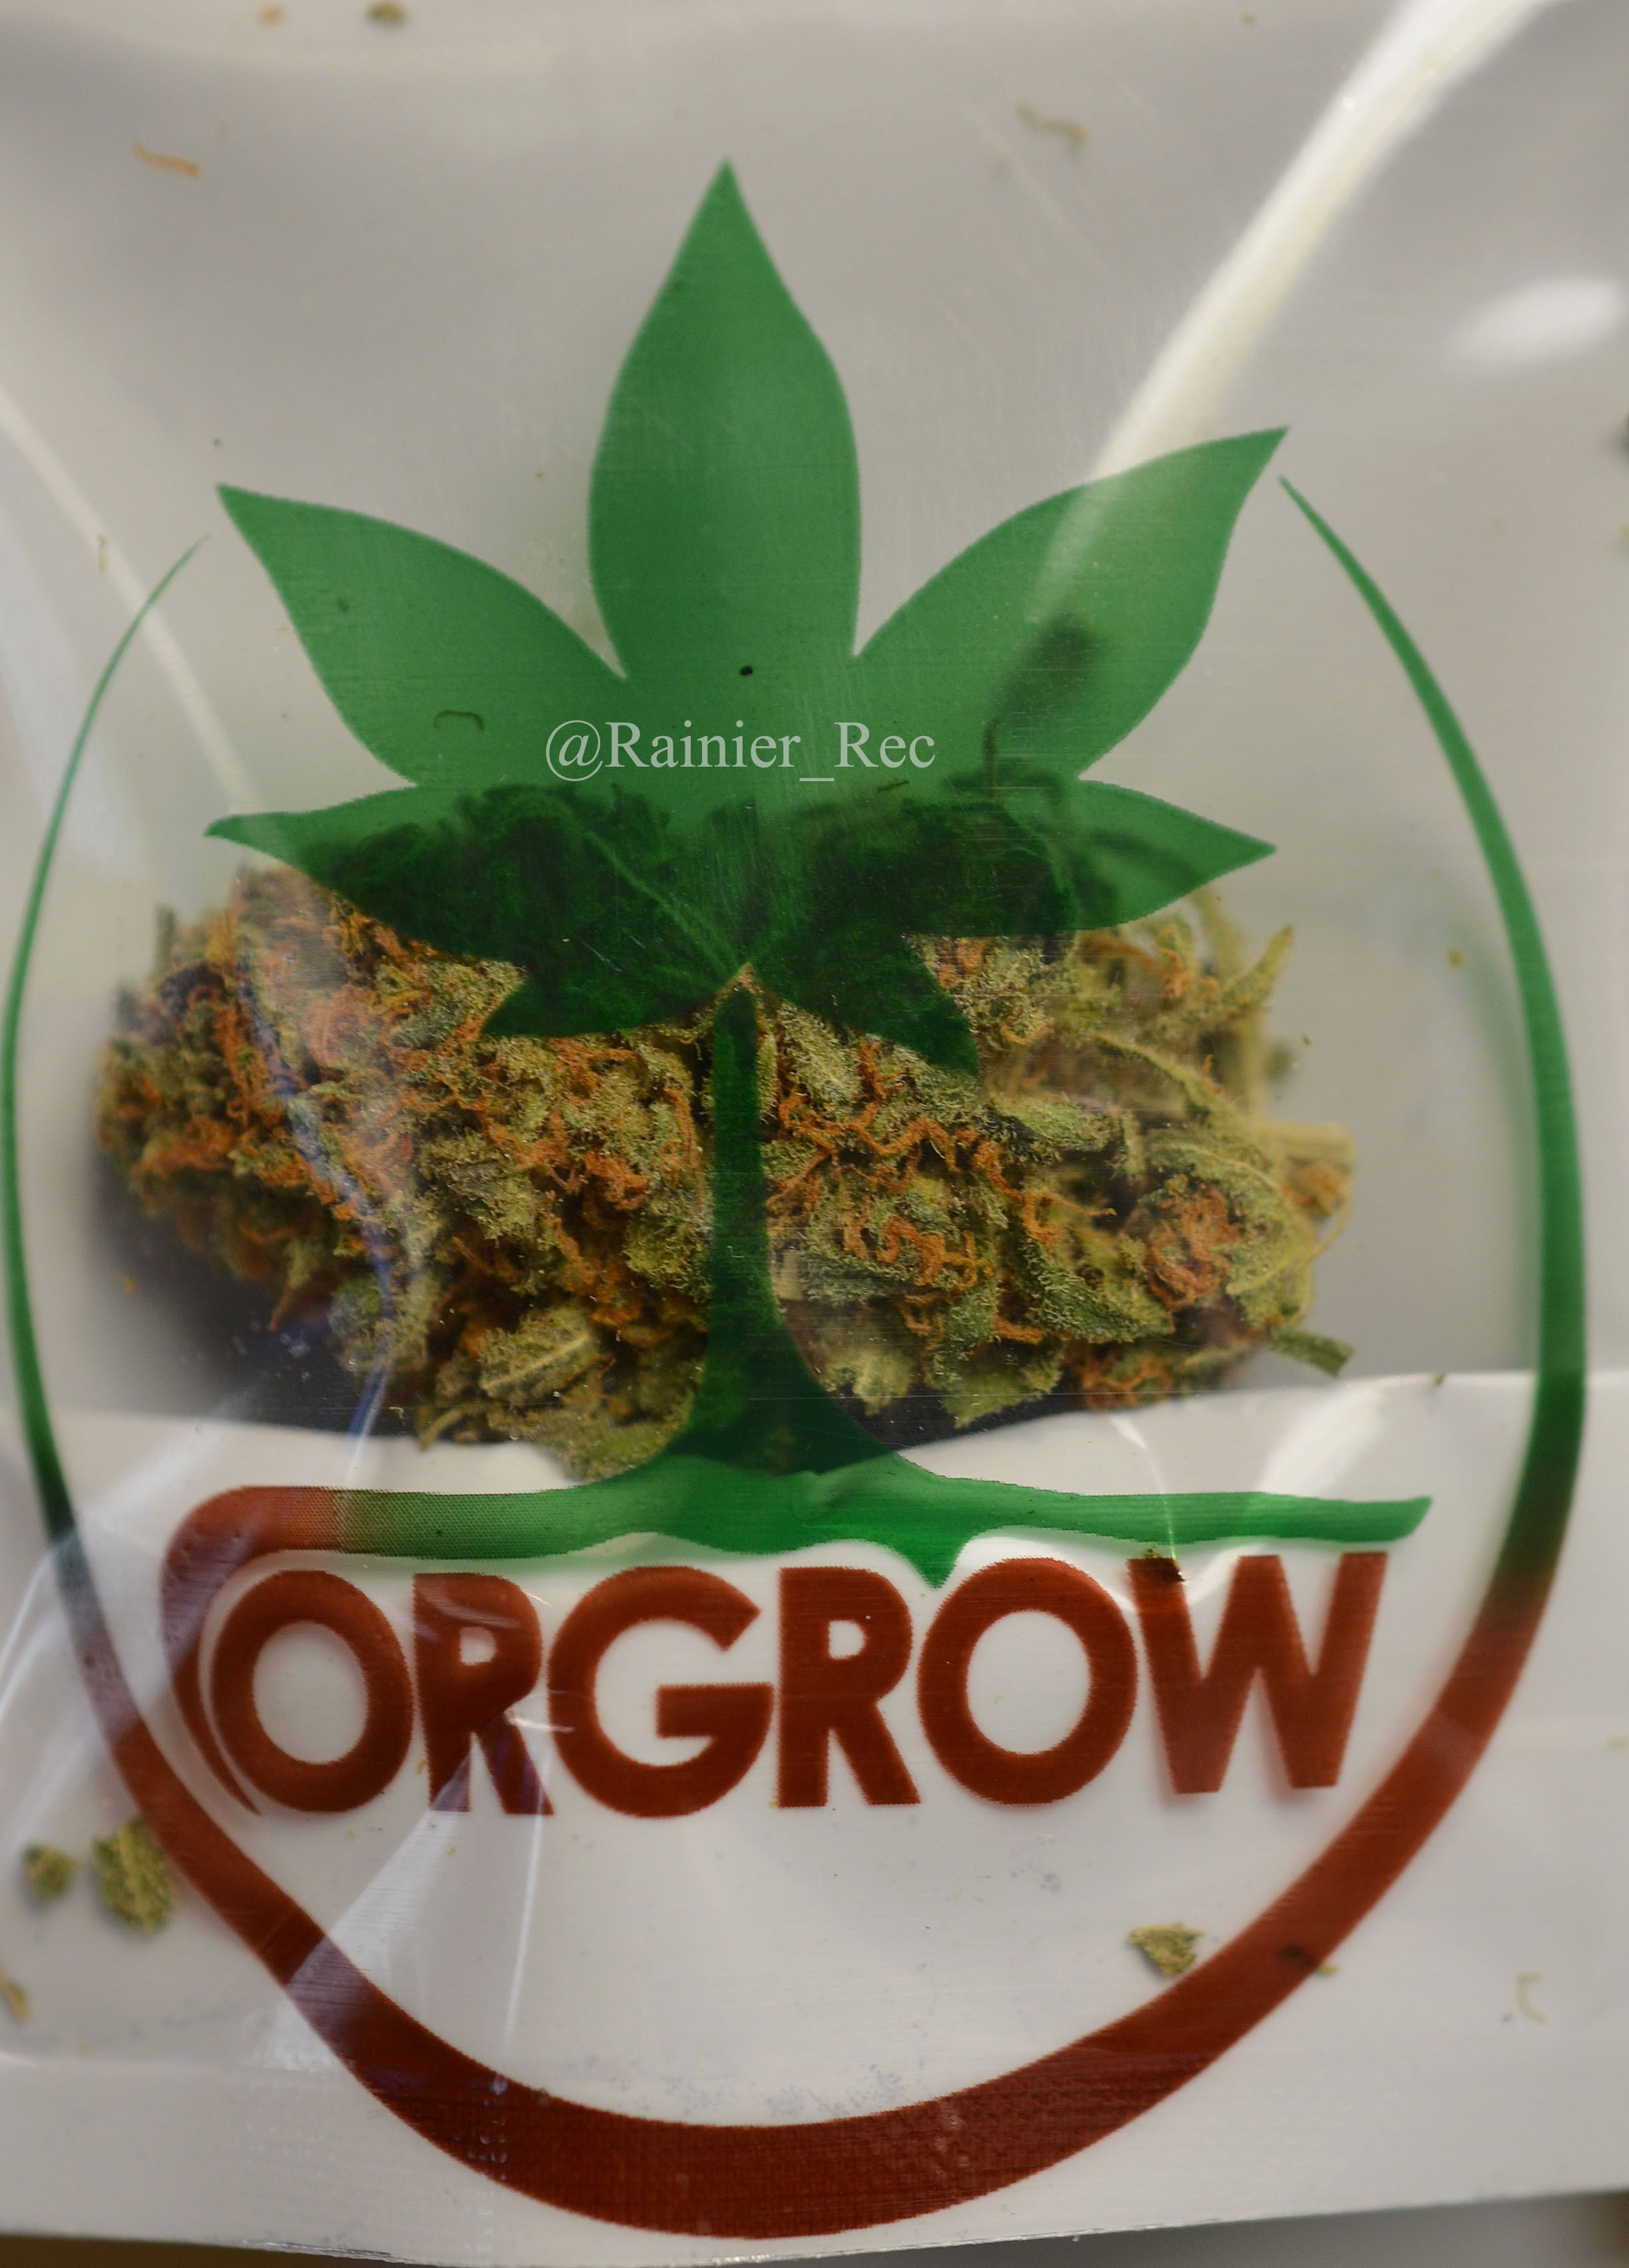 Closer look at some #highgrade #cannabis #legalweed #ExperienceRainier #RainieronPIne OG Critical Mass